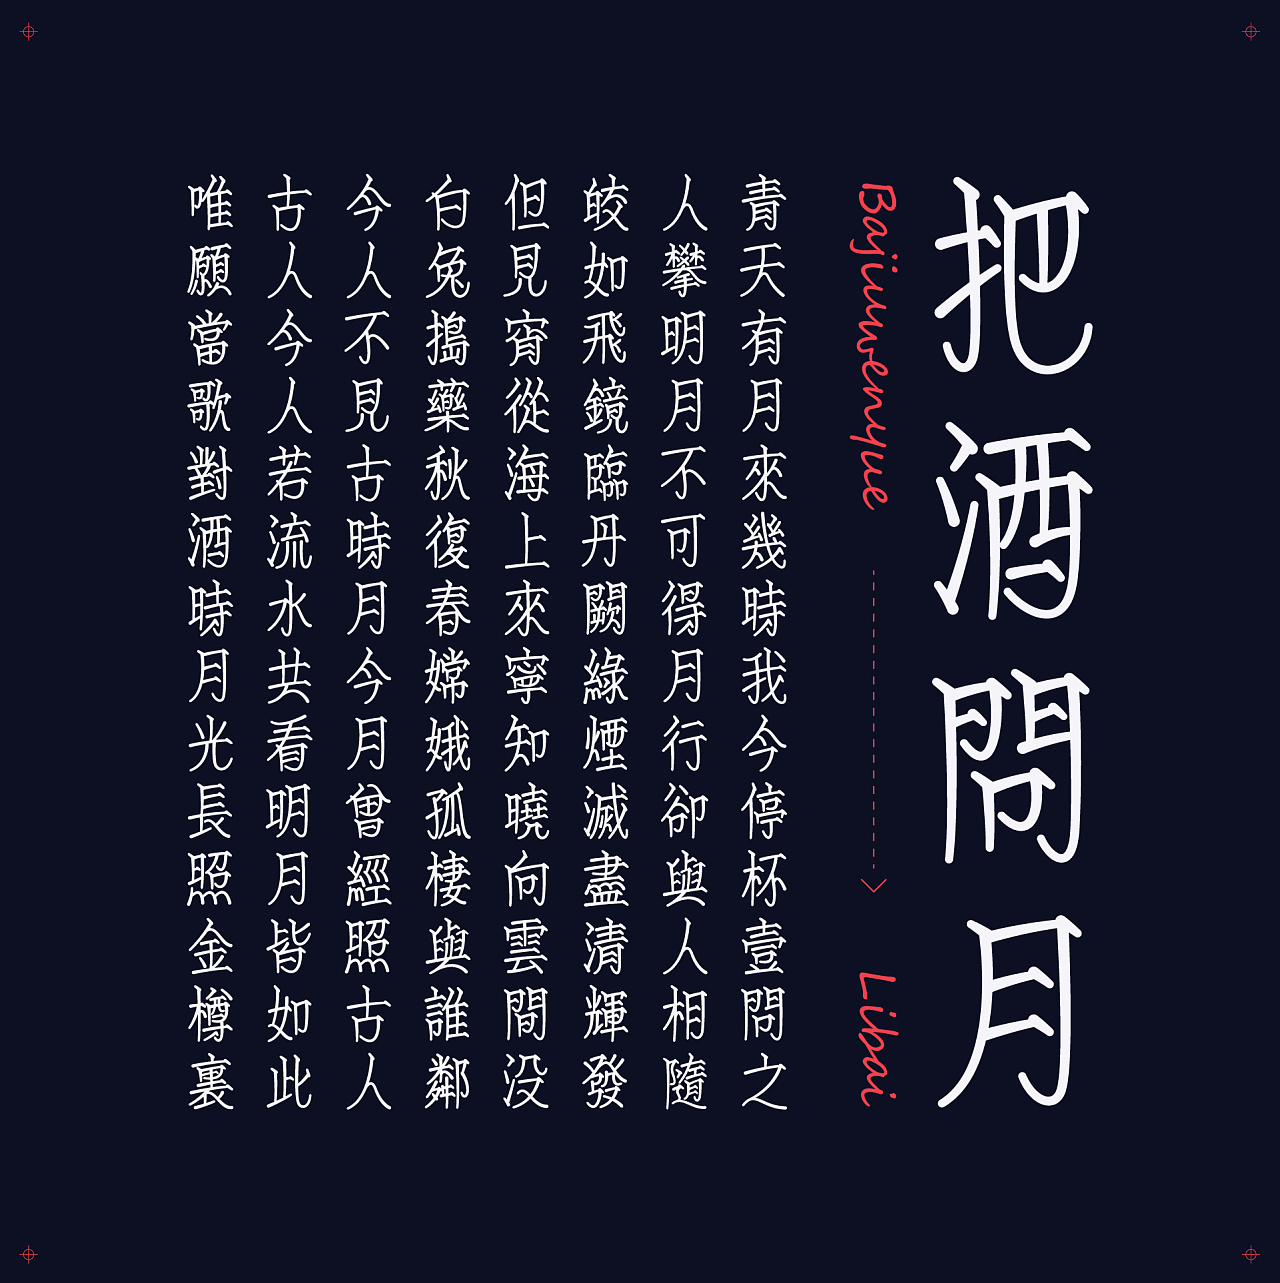 Chinese Creative Font Design-Font Design of Ancient Poems